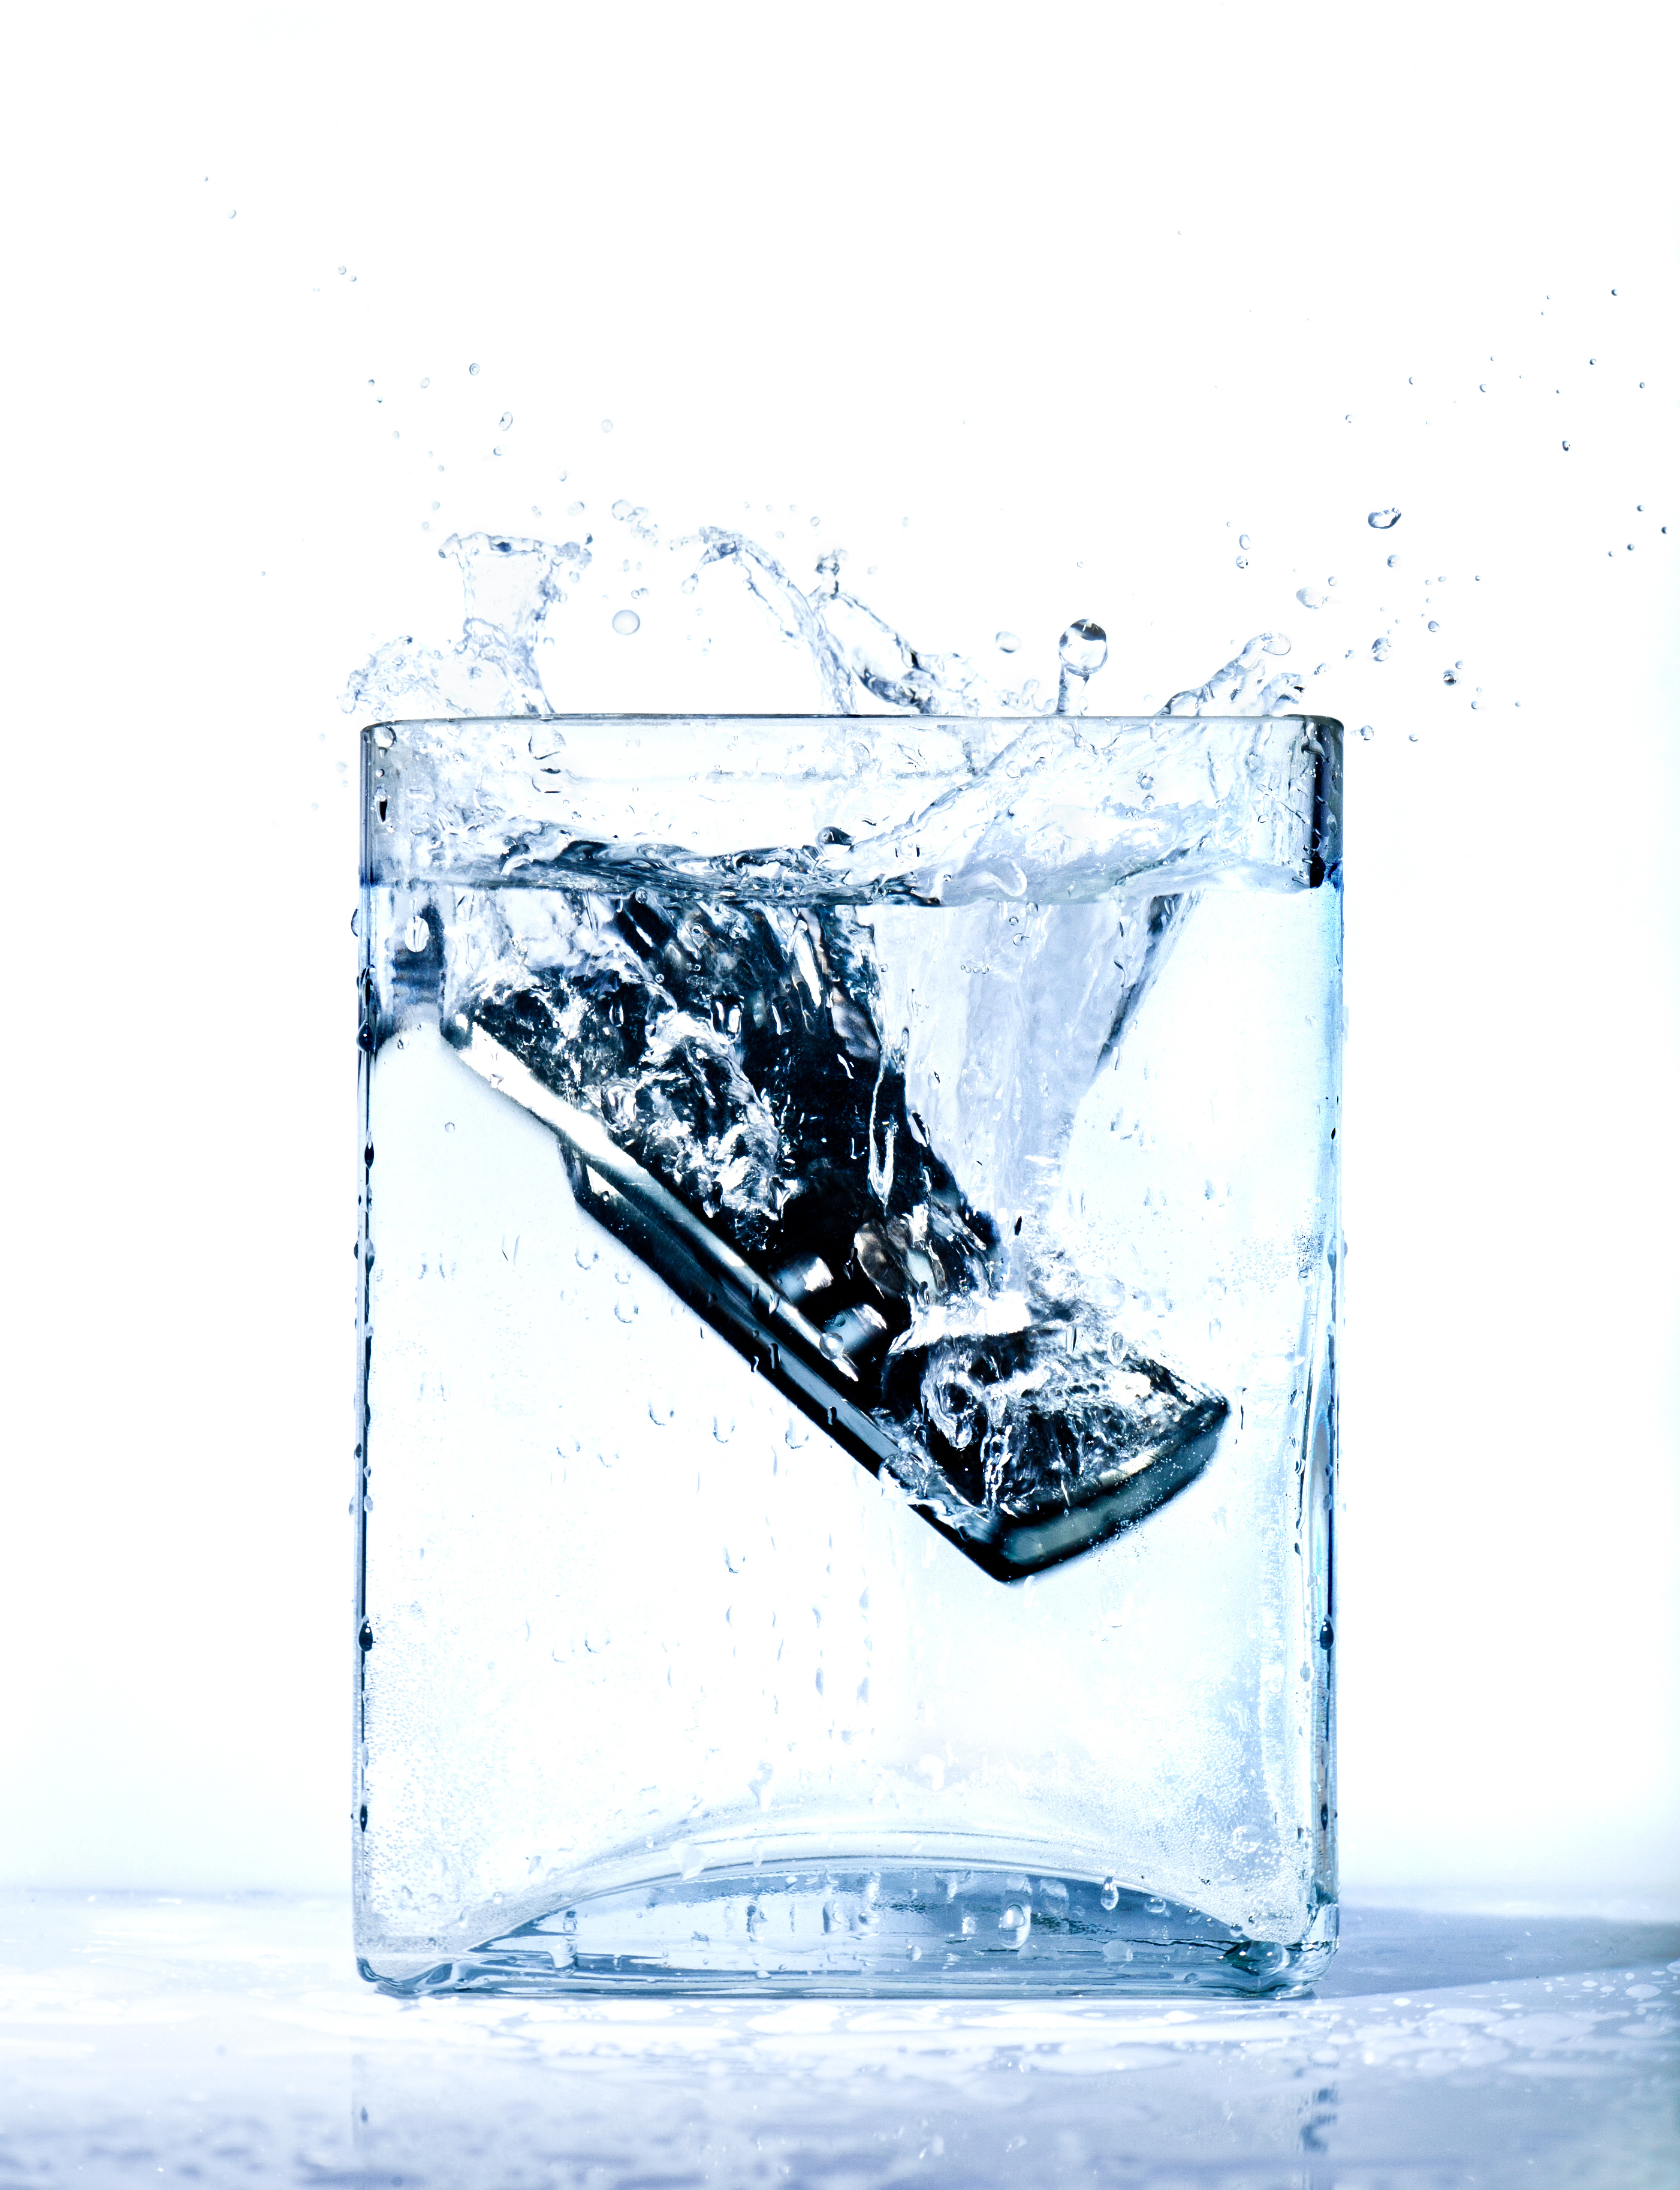 So you got your phone wet now what for Dropped iphone in swimming pool